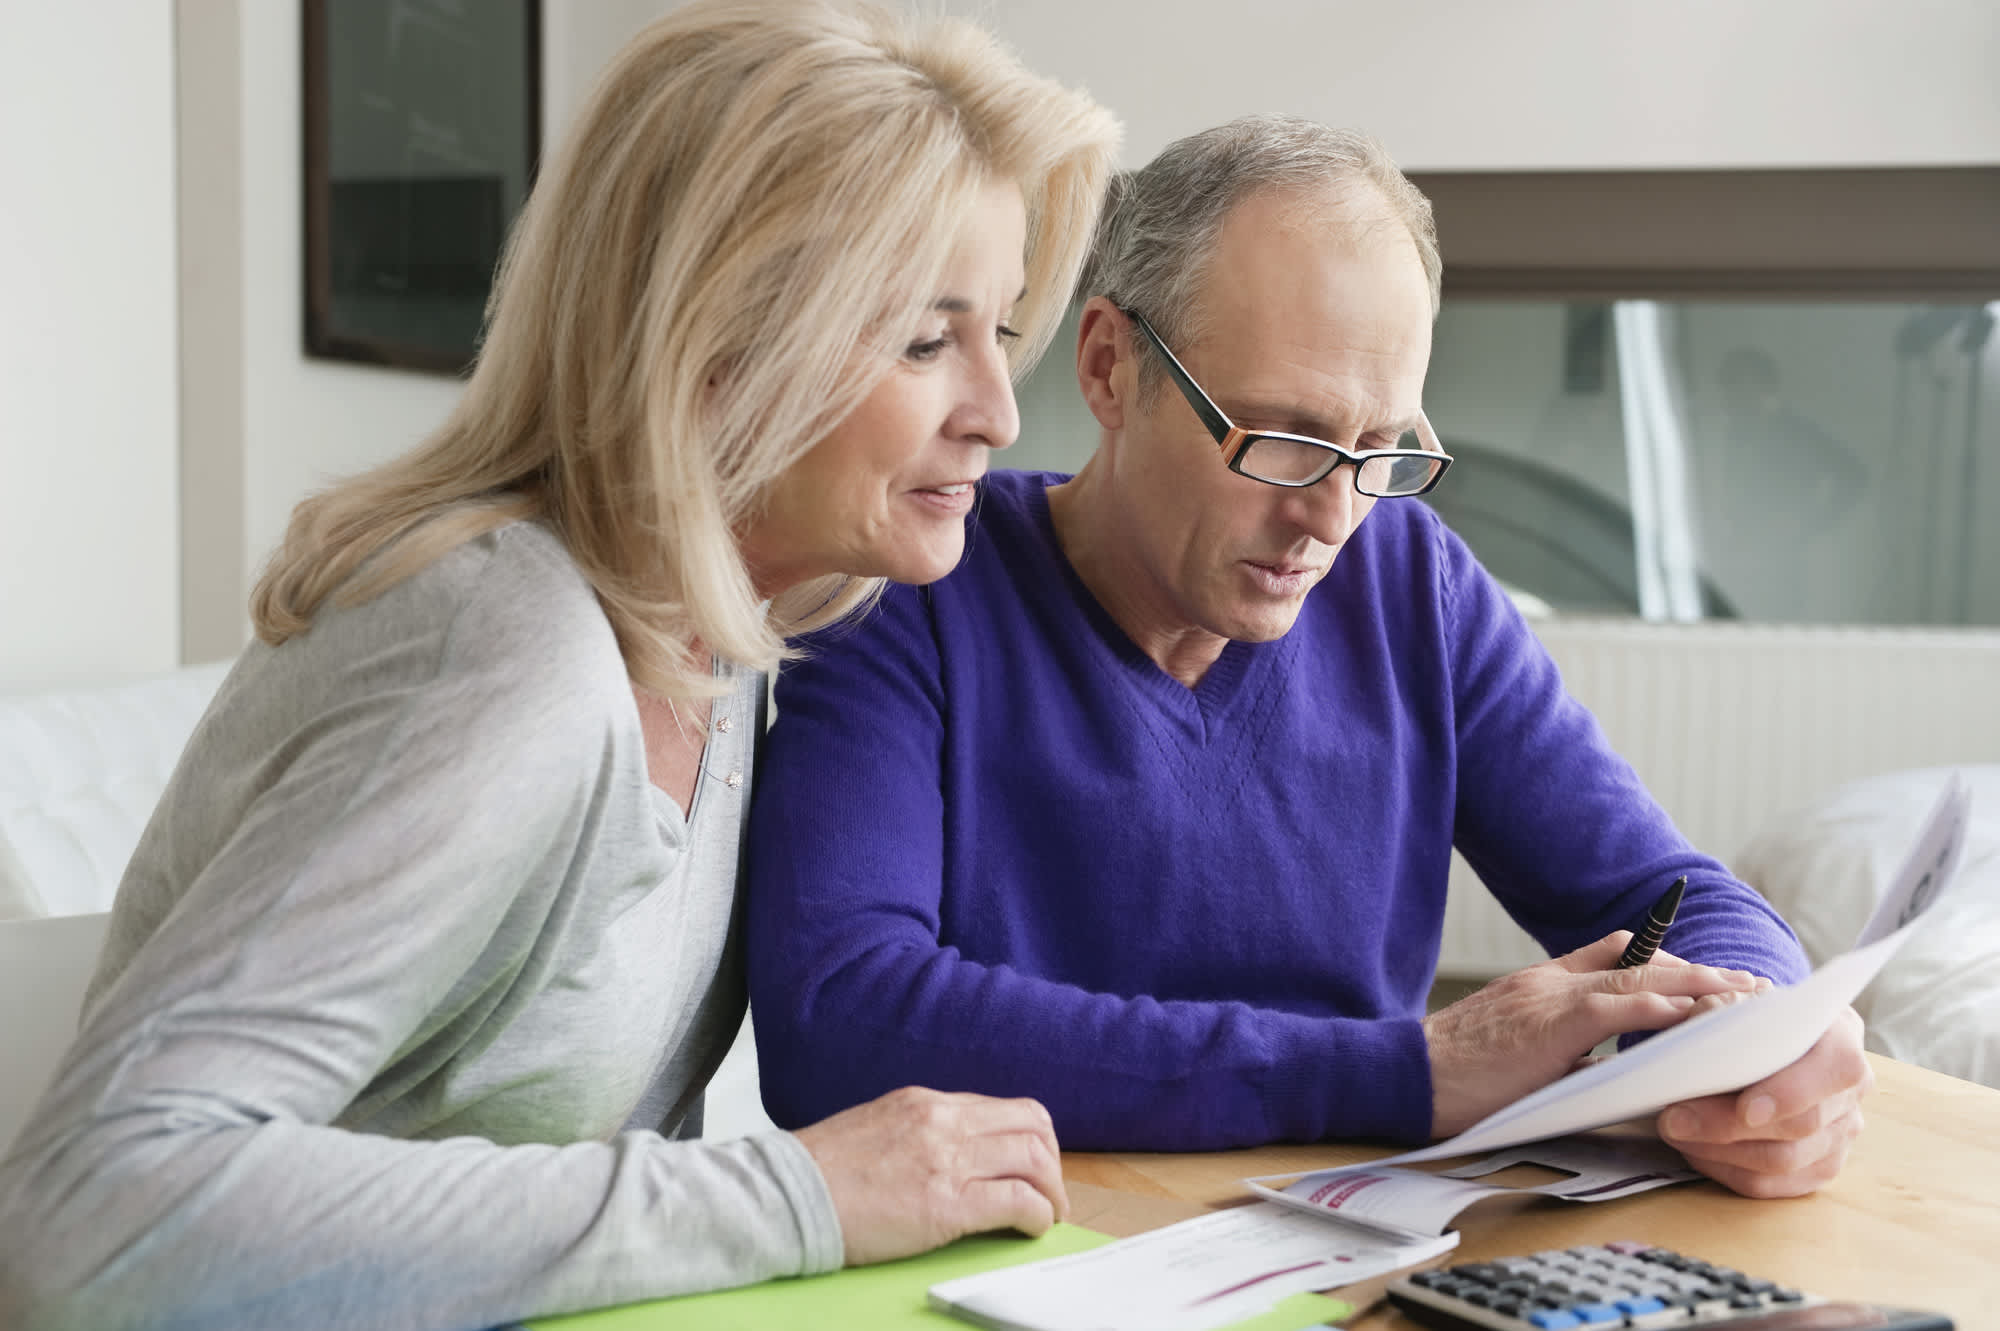 Allocating expenses into needs, goals and aspirations can help provide a better framework for managing your cash flow and living comfortably.